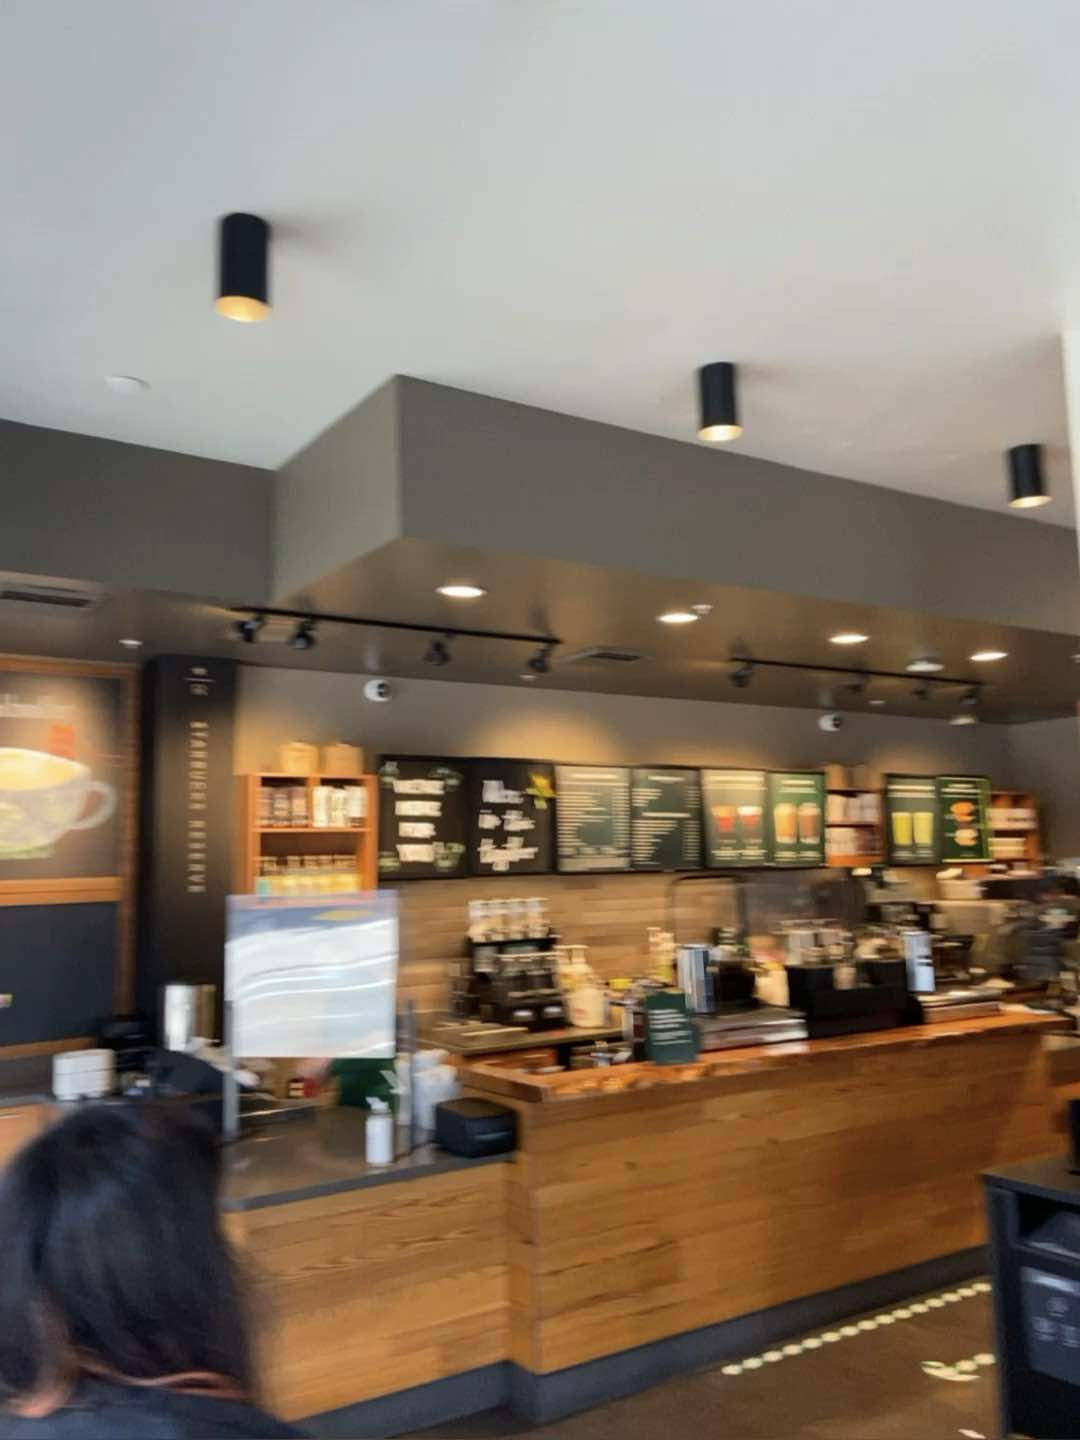 Thumbnail of Starbucks—located in a good area.